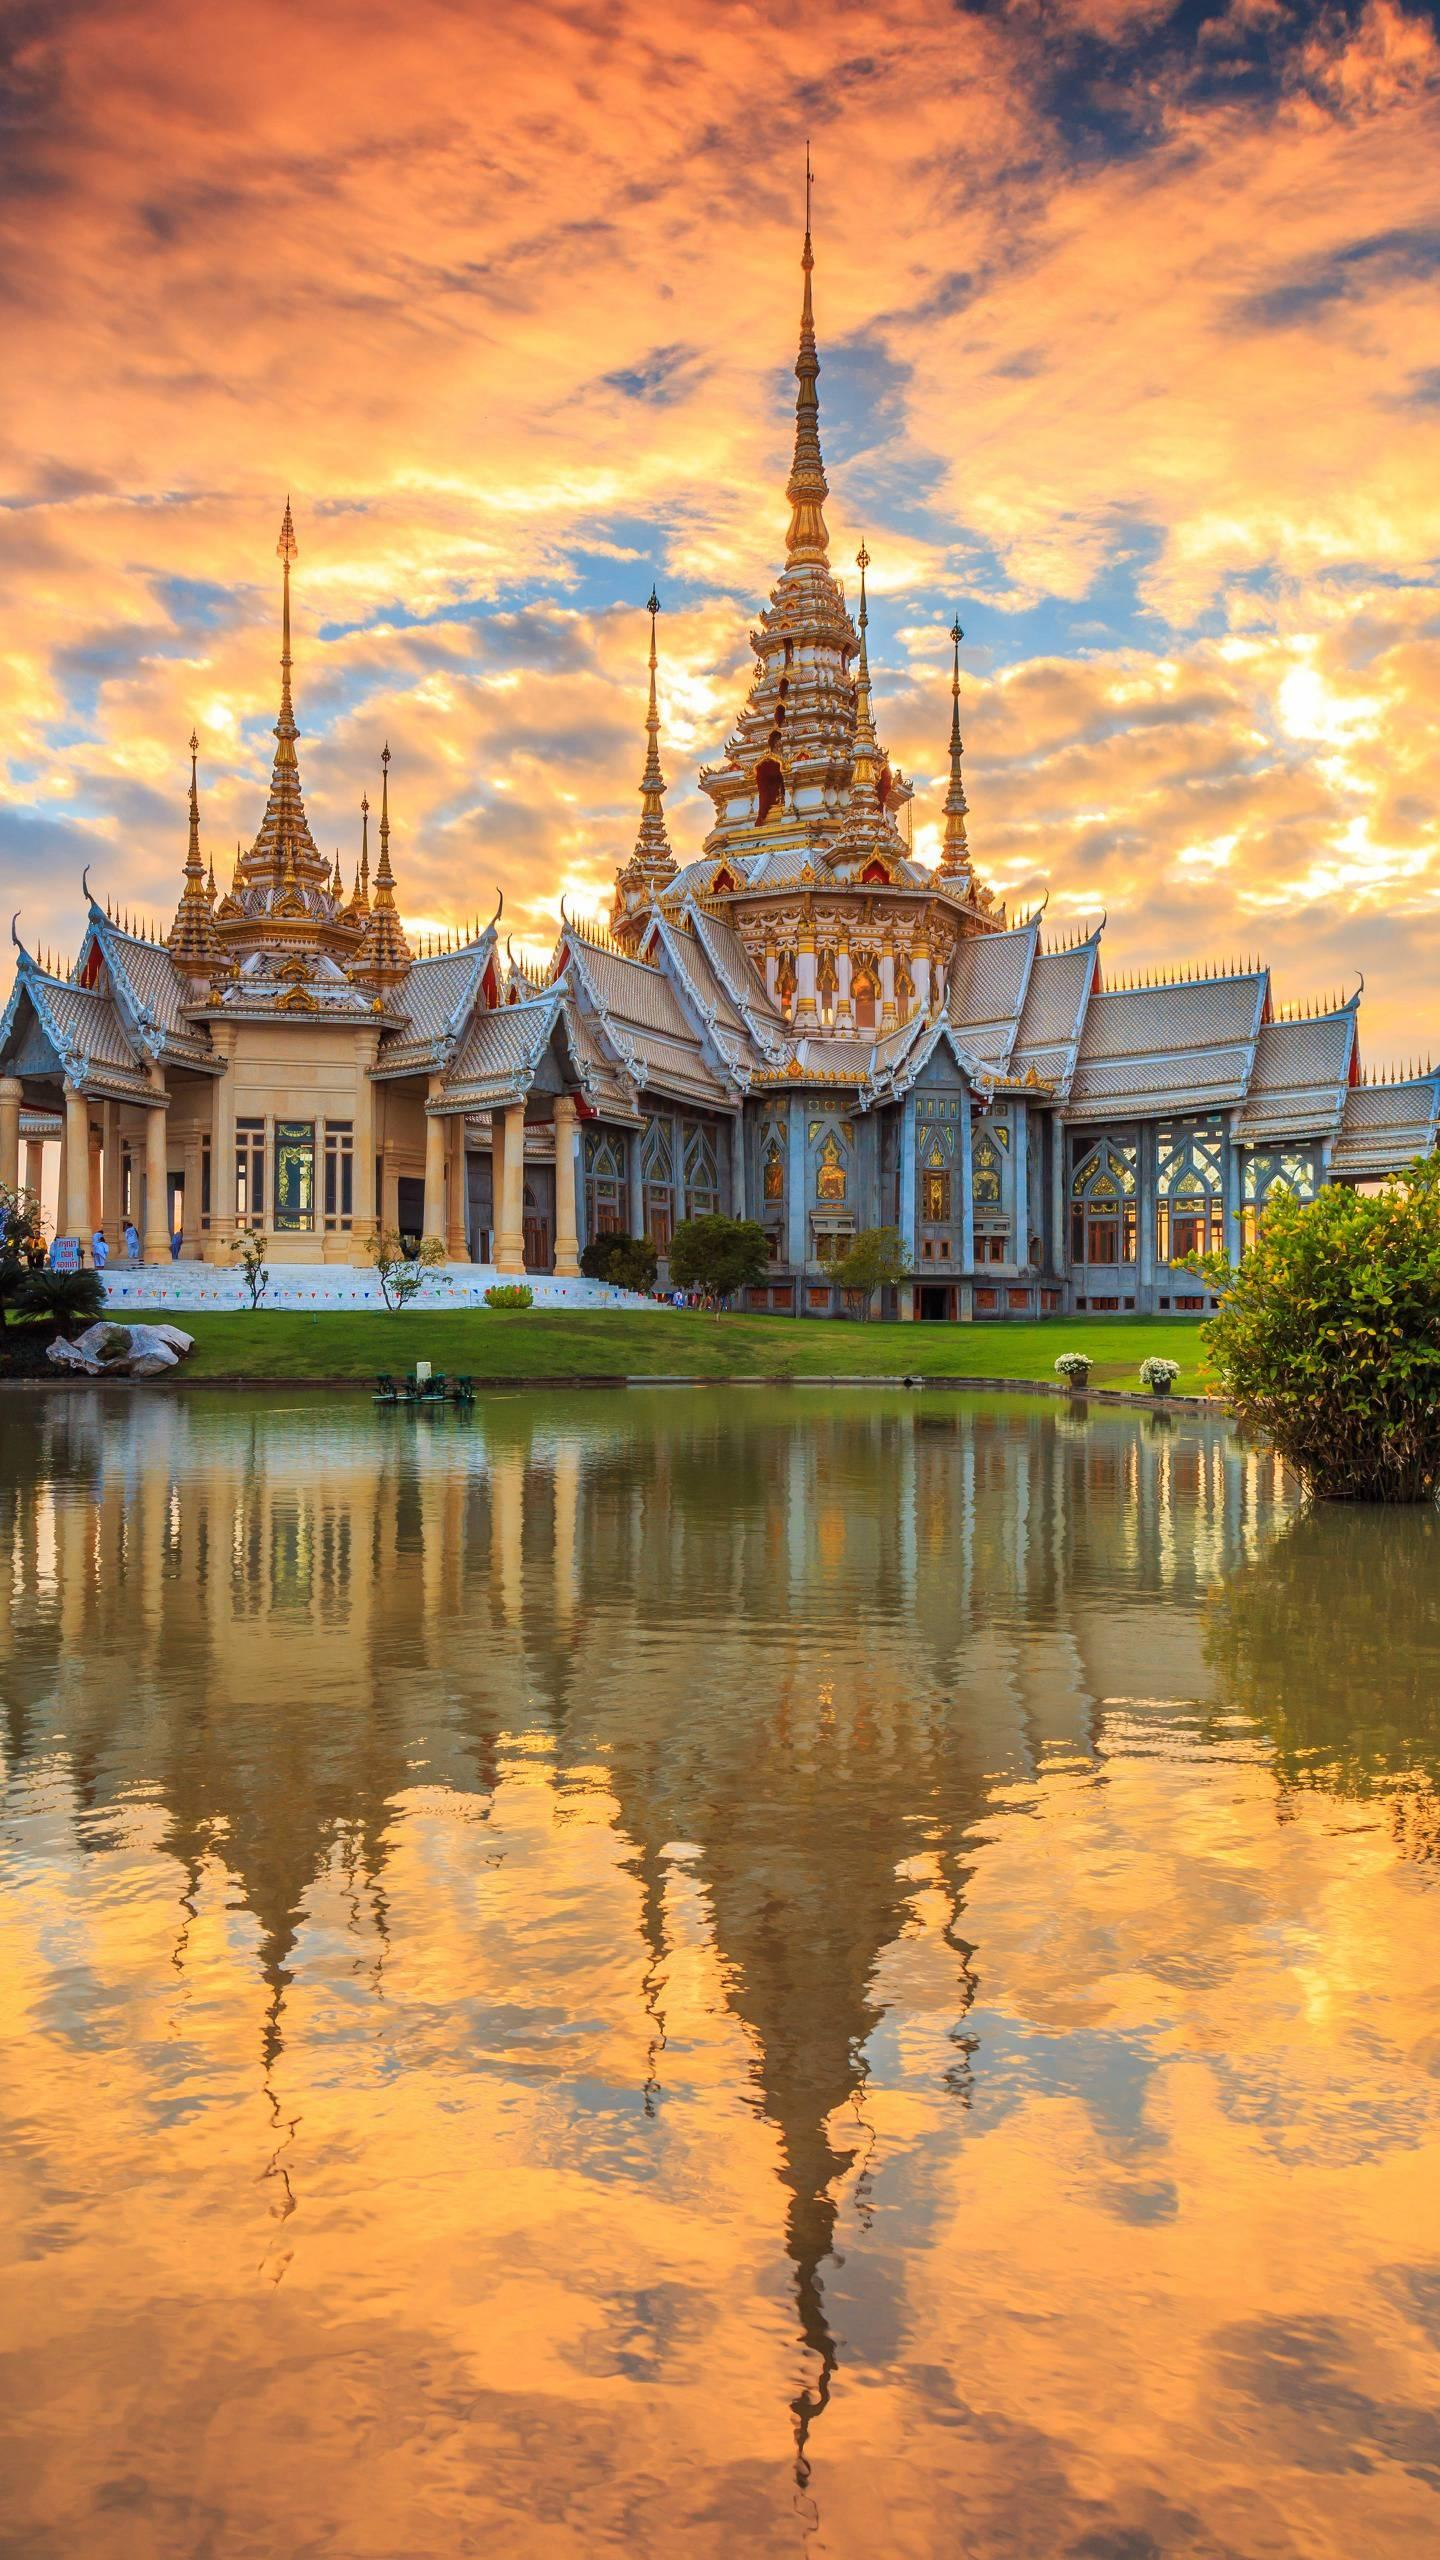 Thailand has always been classified as a popular tourist destination. It is affected by the tropical monsoon and is divided into hot season, cool season and rainy season.